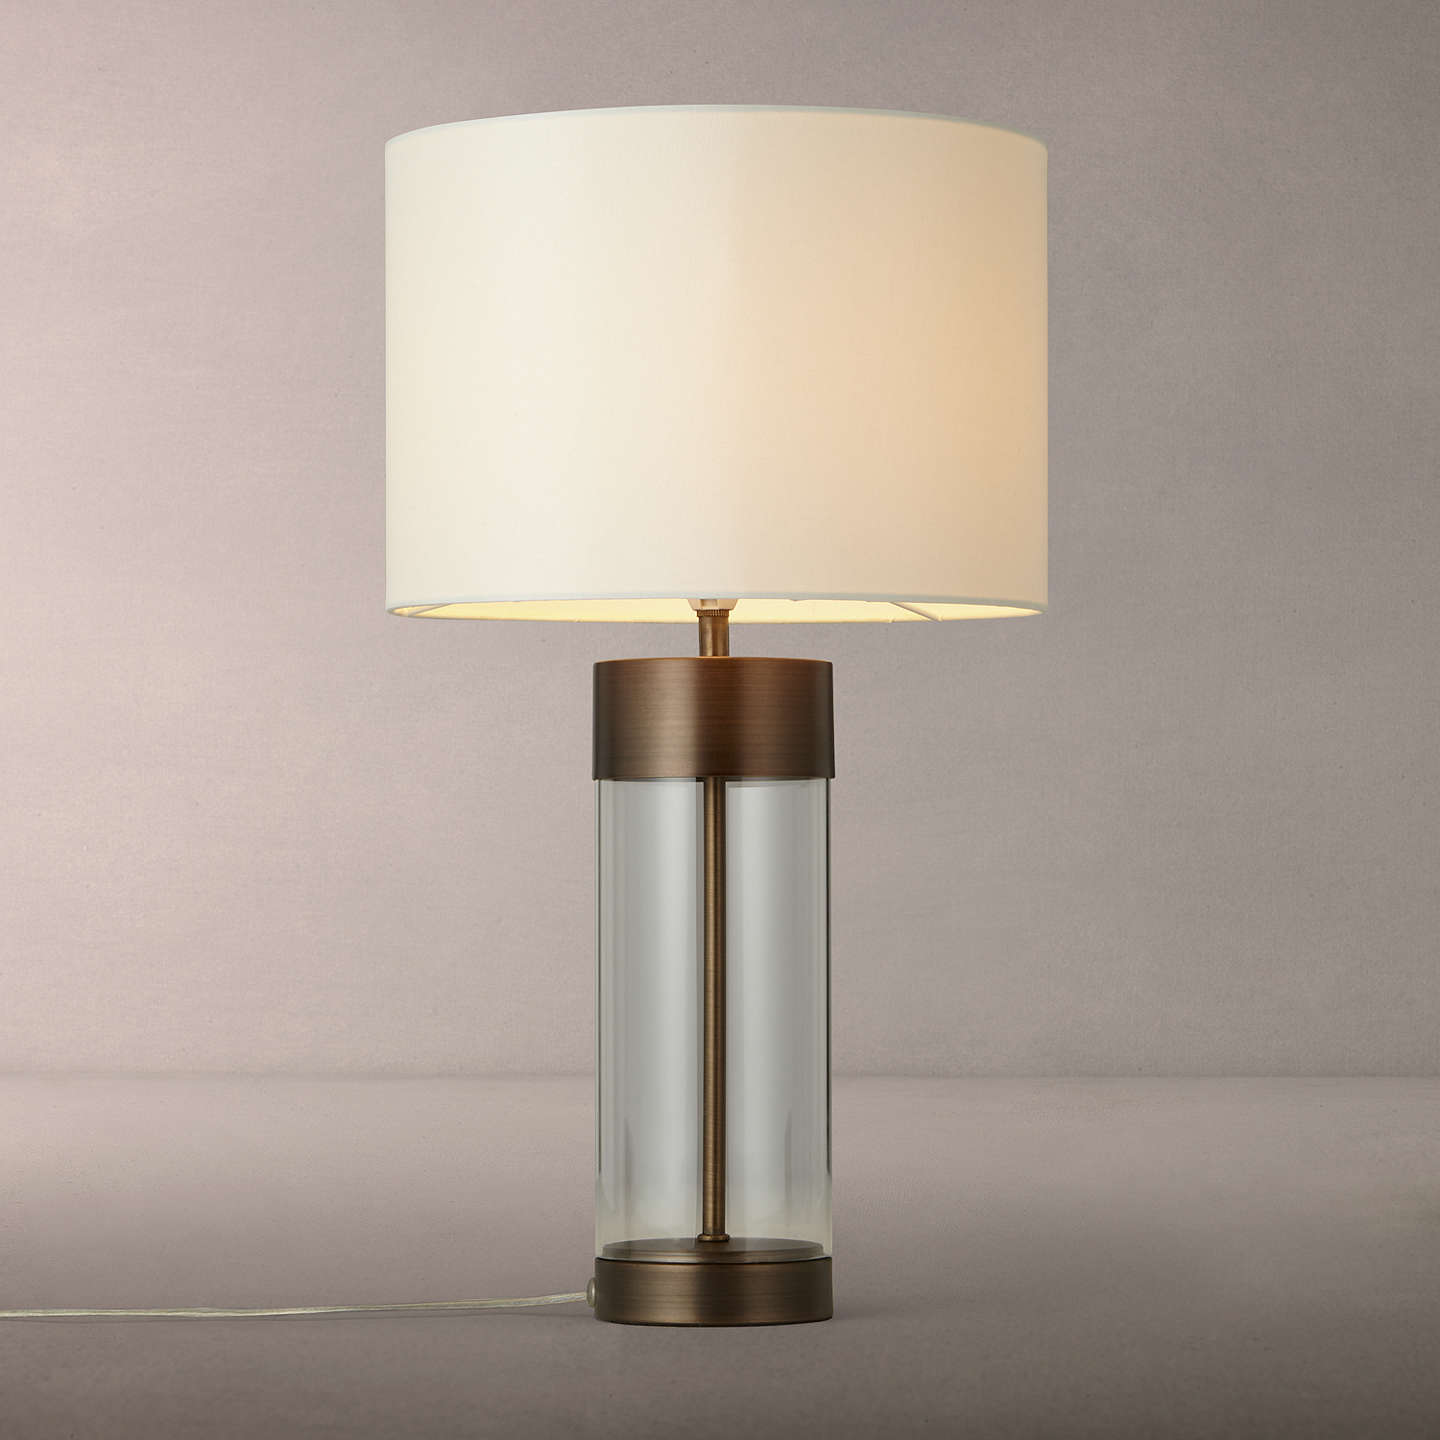 john lewis raif glass table lamp antique bronze at john lewis